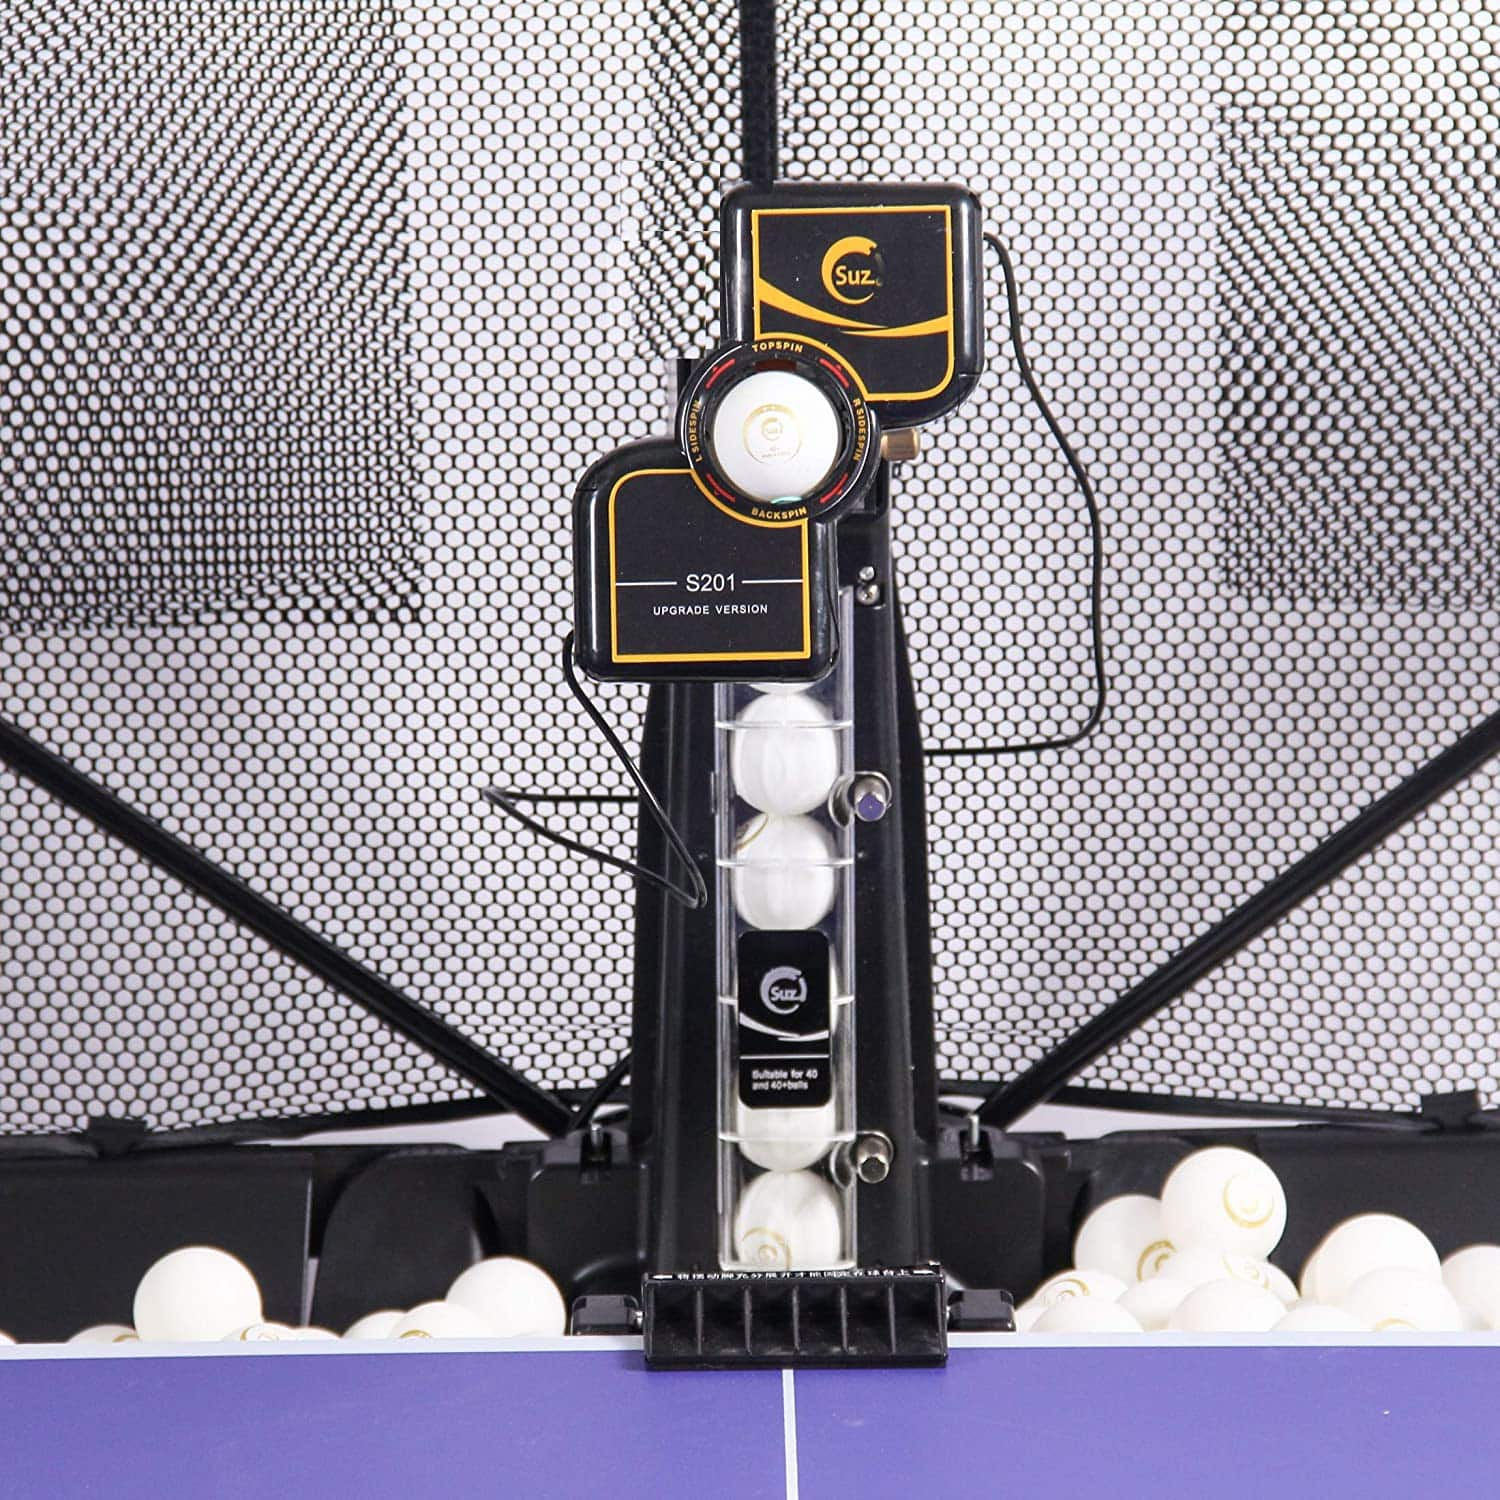 Suz Table Tennis Robot with Net Ping Pong Ball Machine